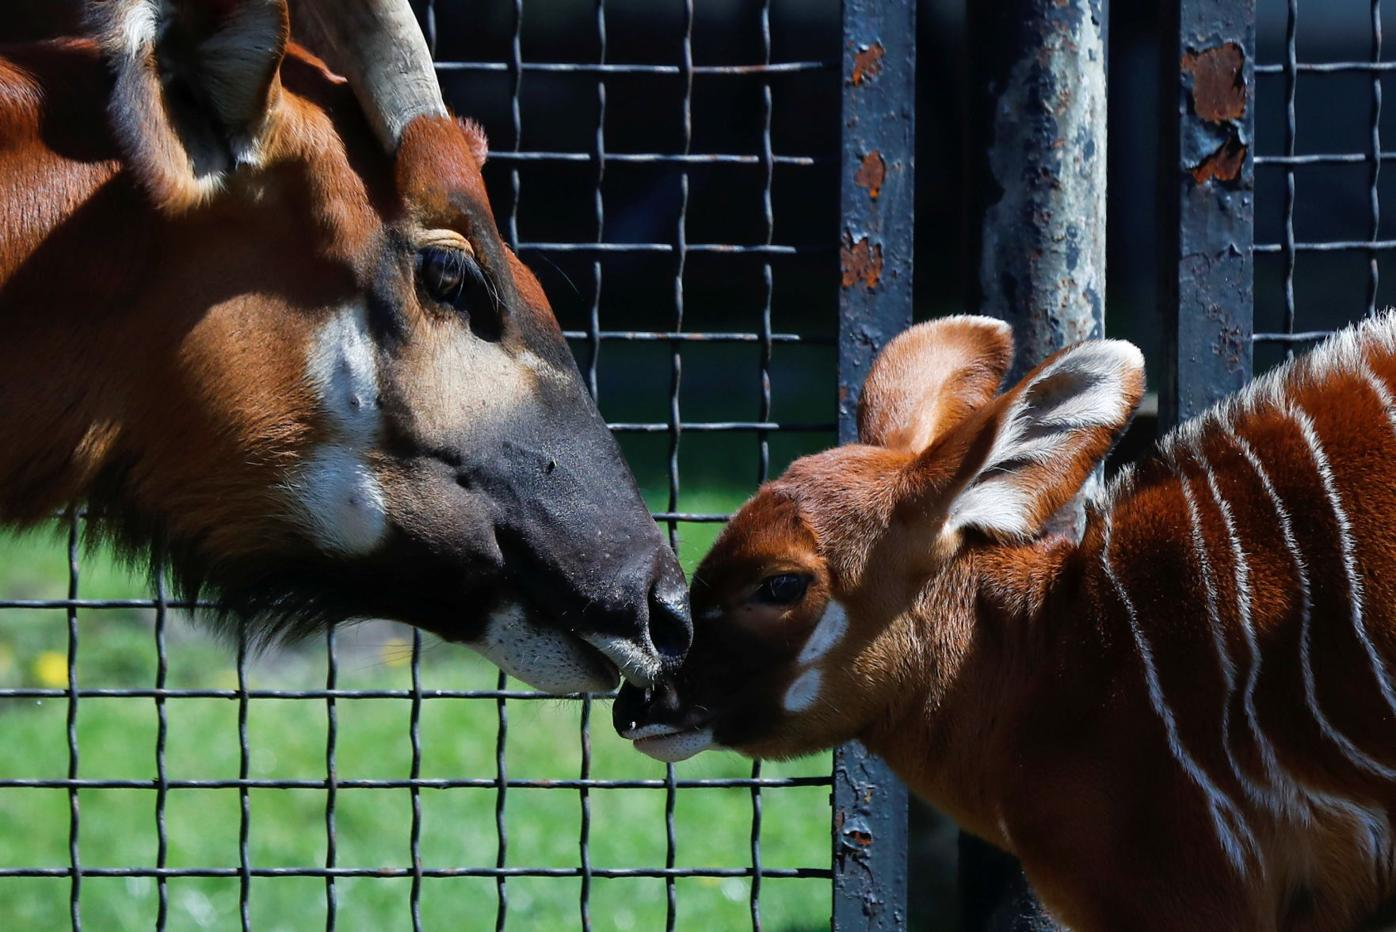 A newborn mountain bongo, the largest of African forest antelopes, is seen in the Warsaw Zoo